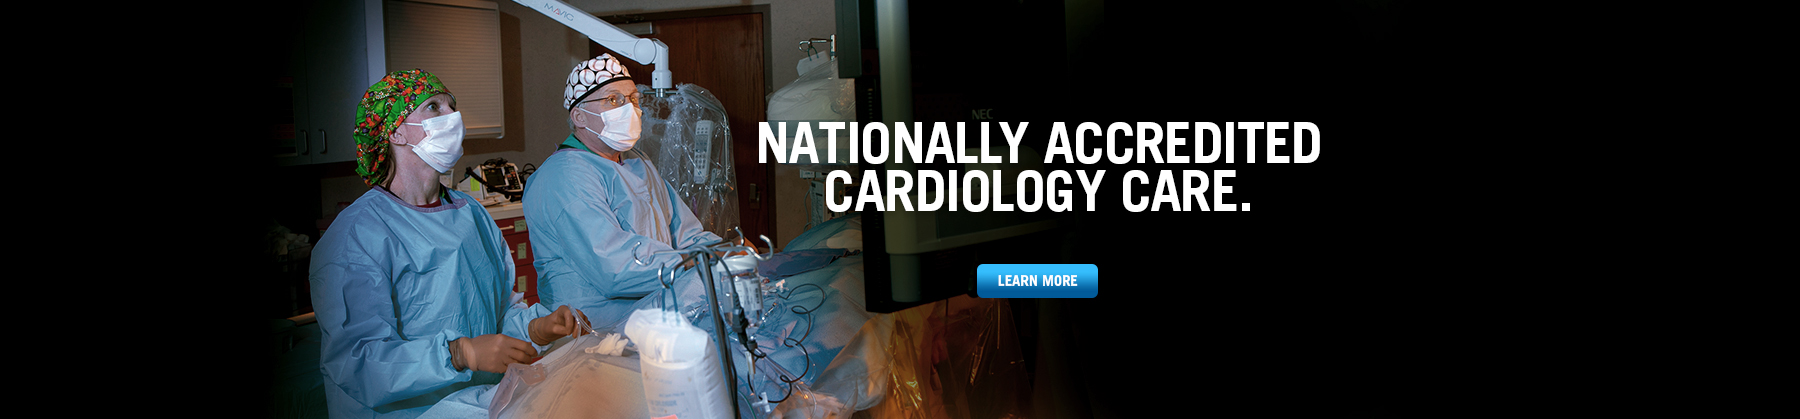 Nationally Accredited Cardiology Care.